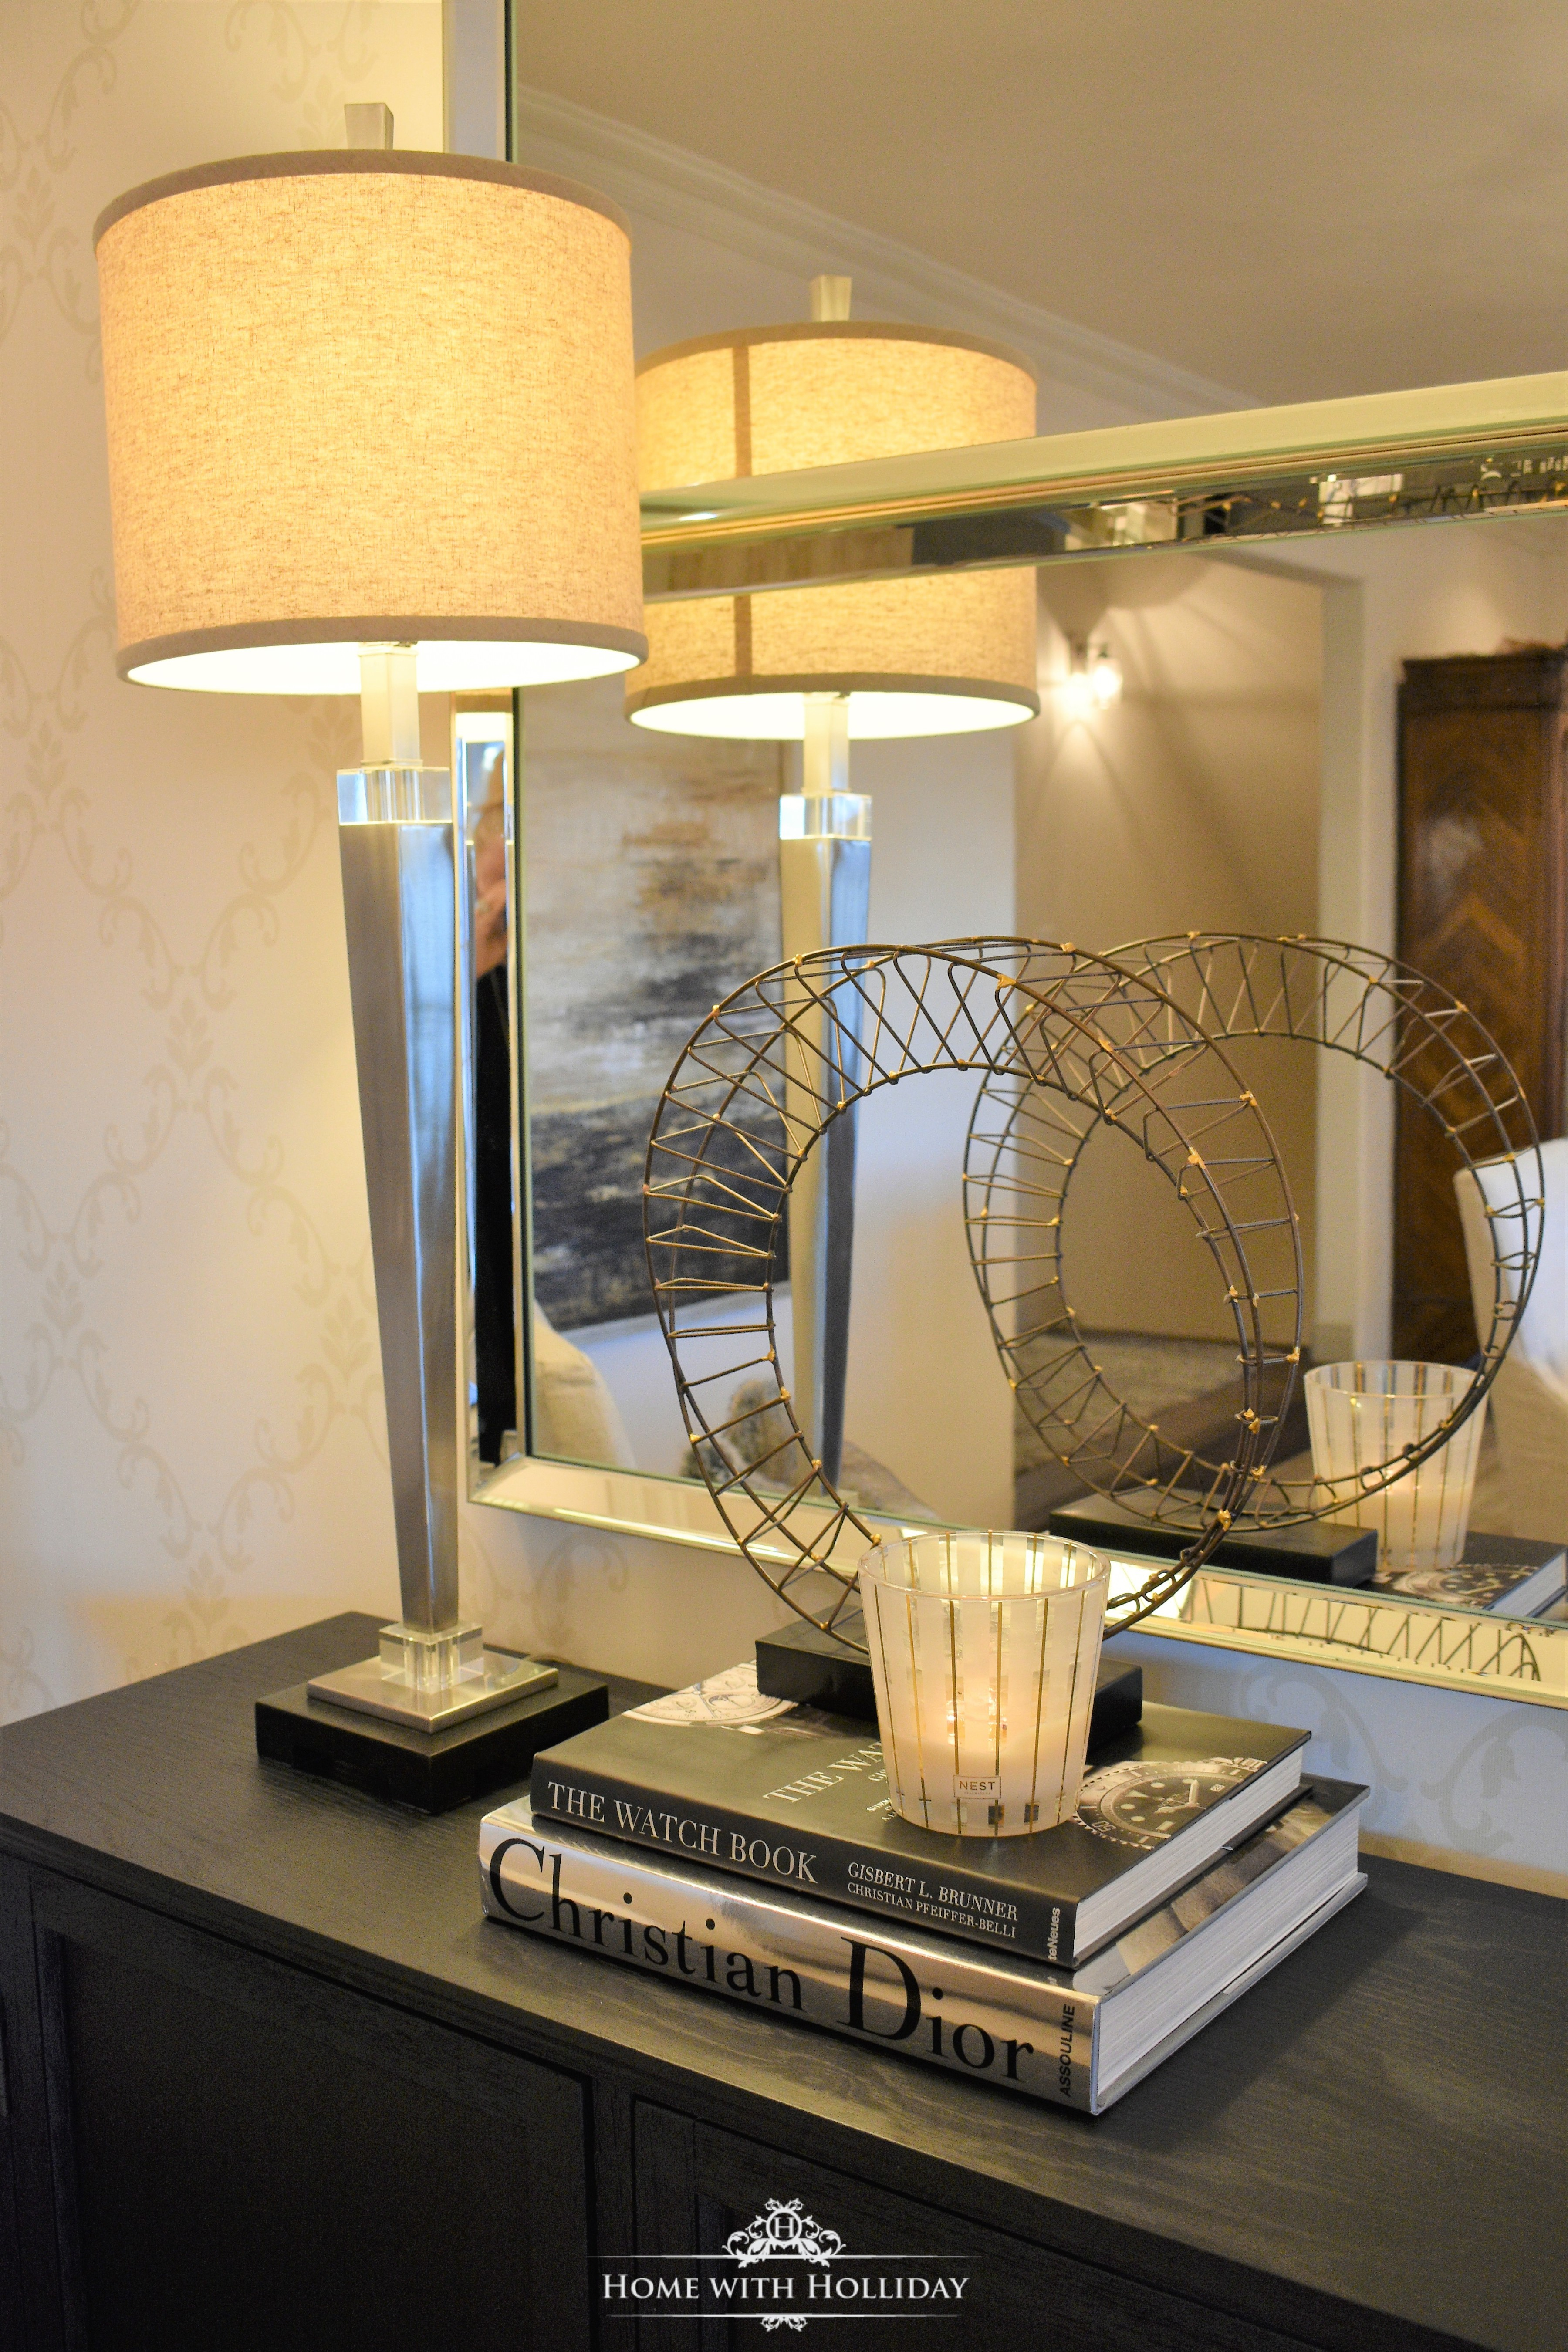 Decorating a Buffet with Coffee Table Books